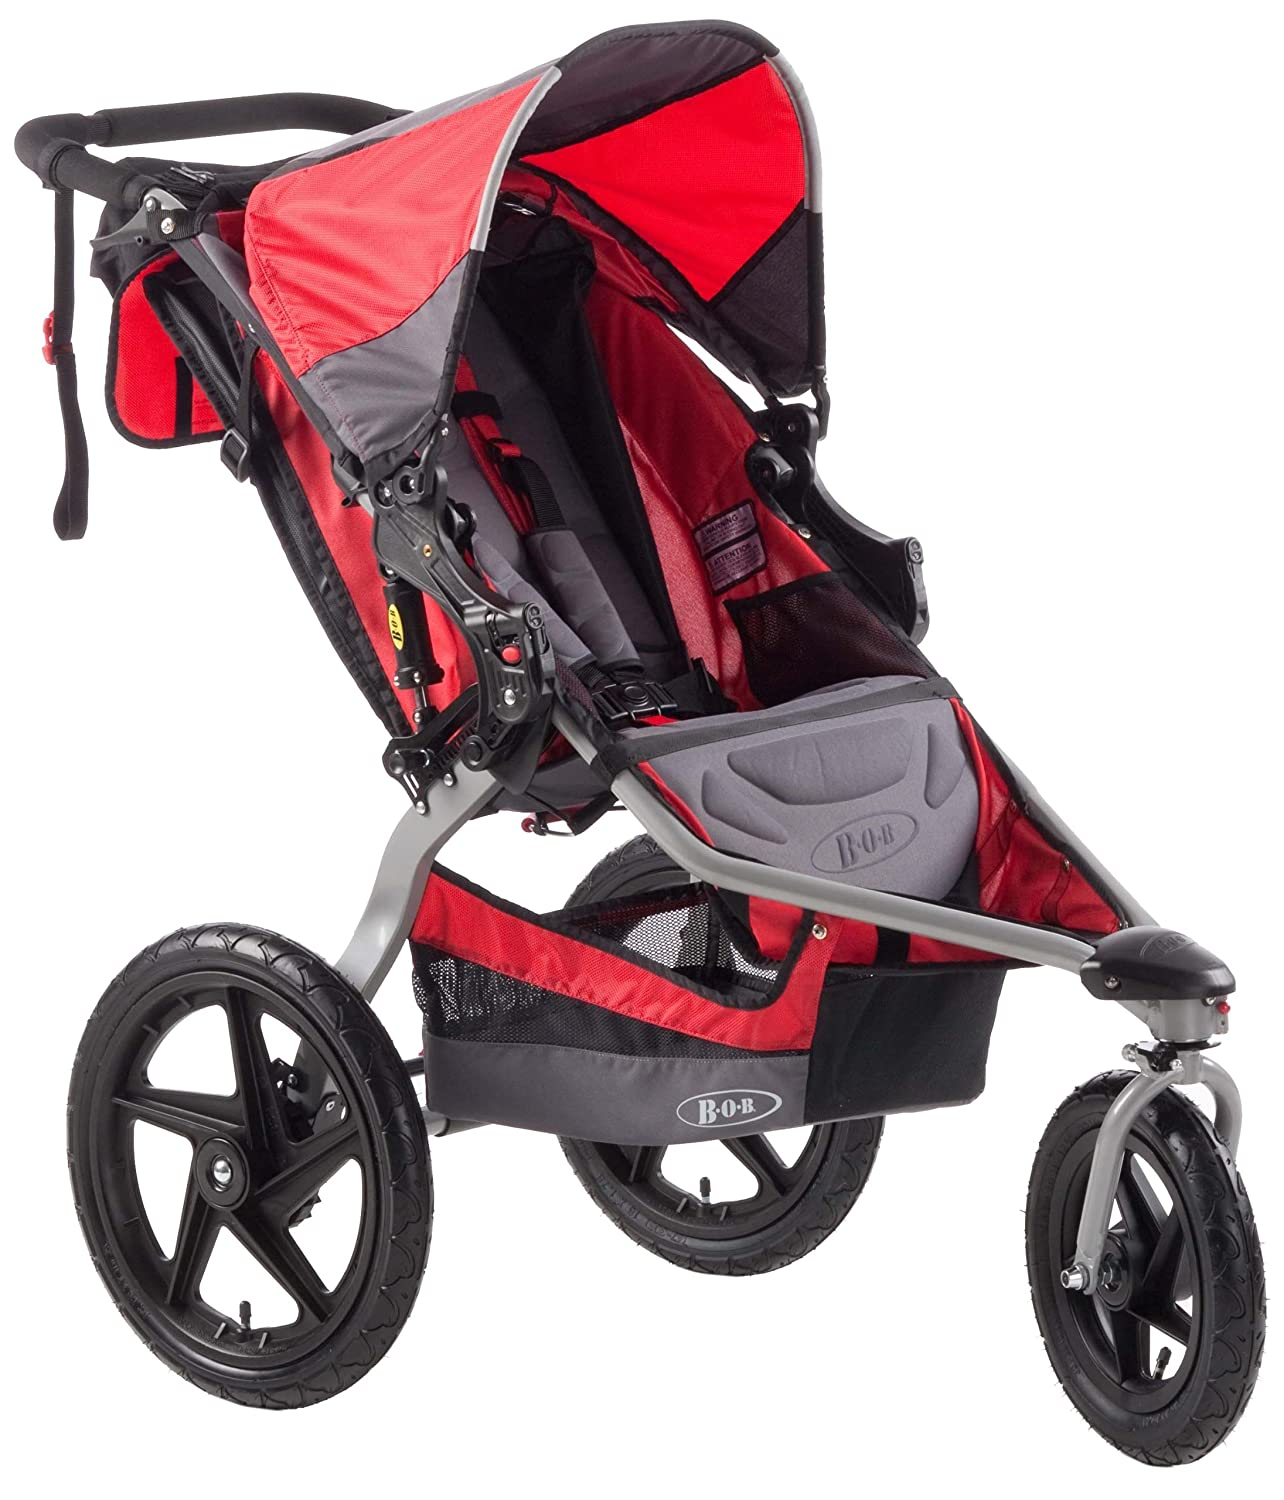 Amazon BOB Stroller Strides Single Fitness Stroller Red Jogging Strollers Baby